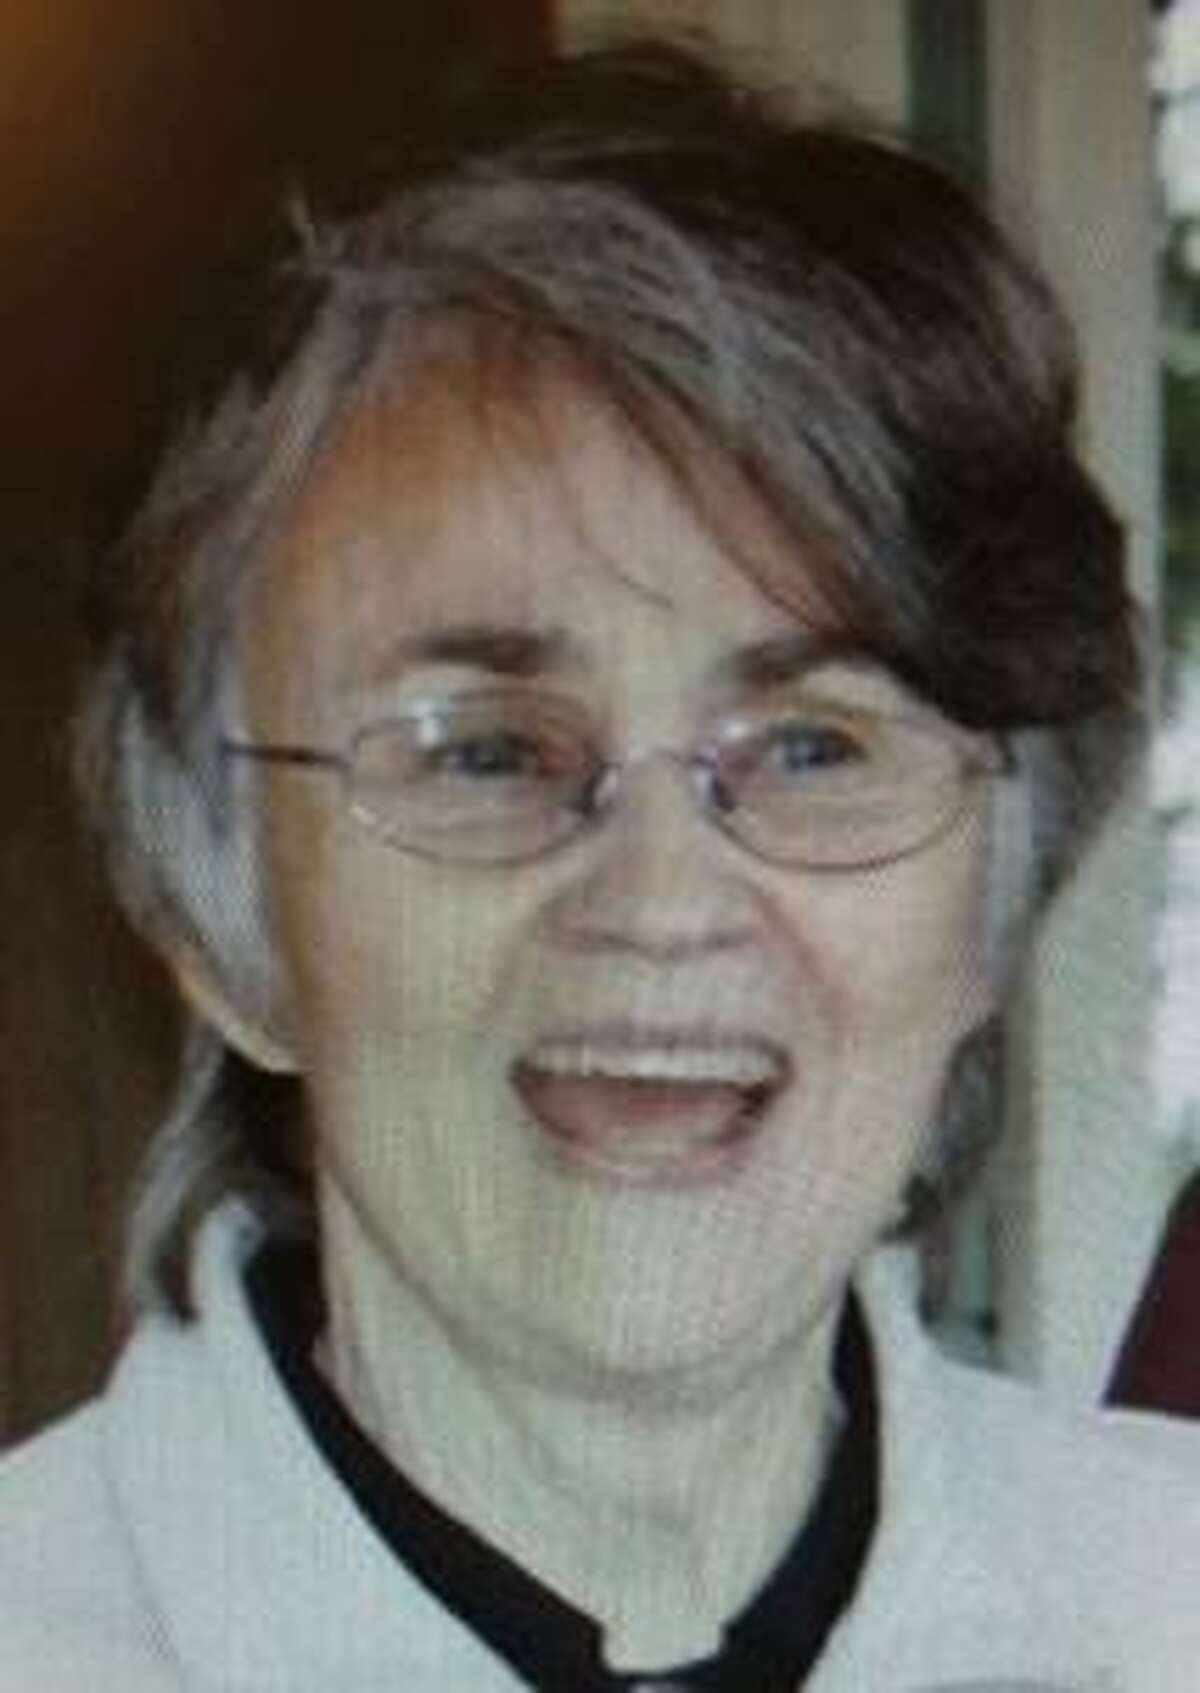 Sharon Rae Robinson, 79, was identified as one of the victims of the Tubbs Fire.